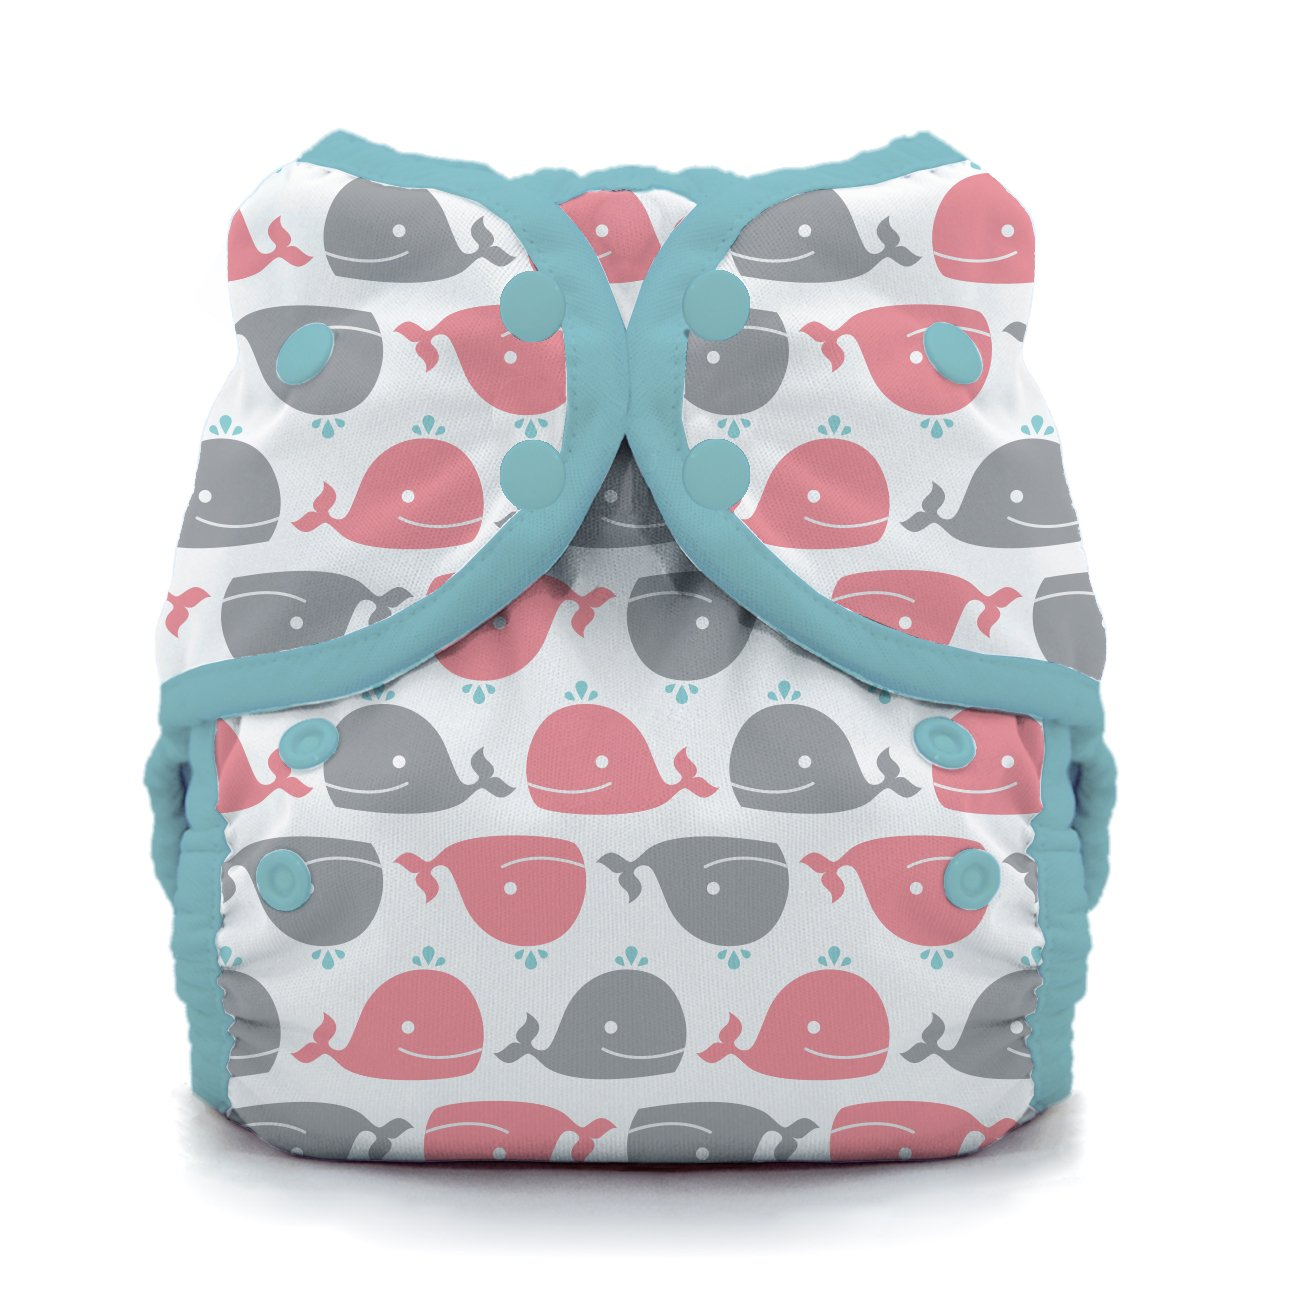 Swim Diaper- Whales Size One, Size One (6-18 lbs) by Thirsties